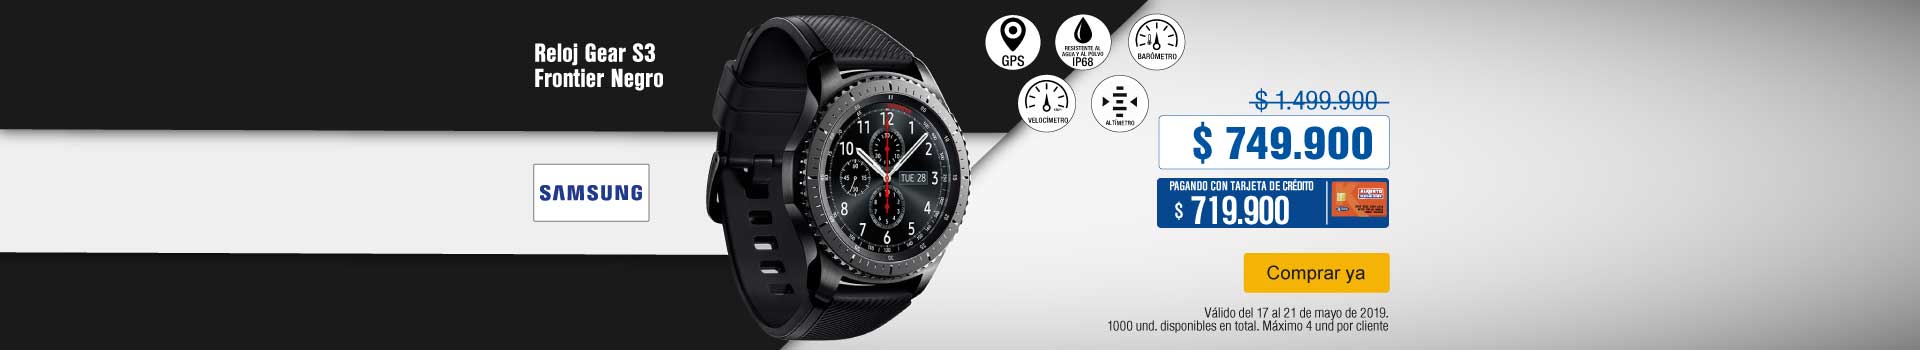 AK-KT-BCAT-1-SMARTWATCH-FRONTIER-MAYO 17